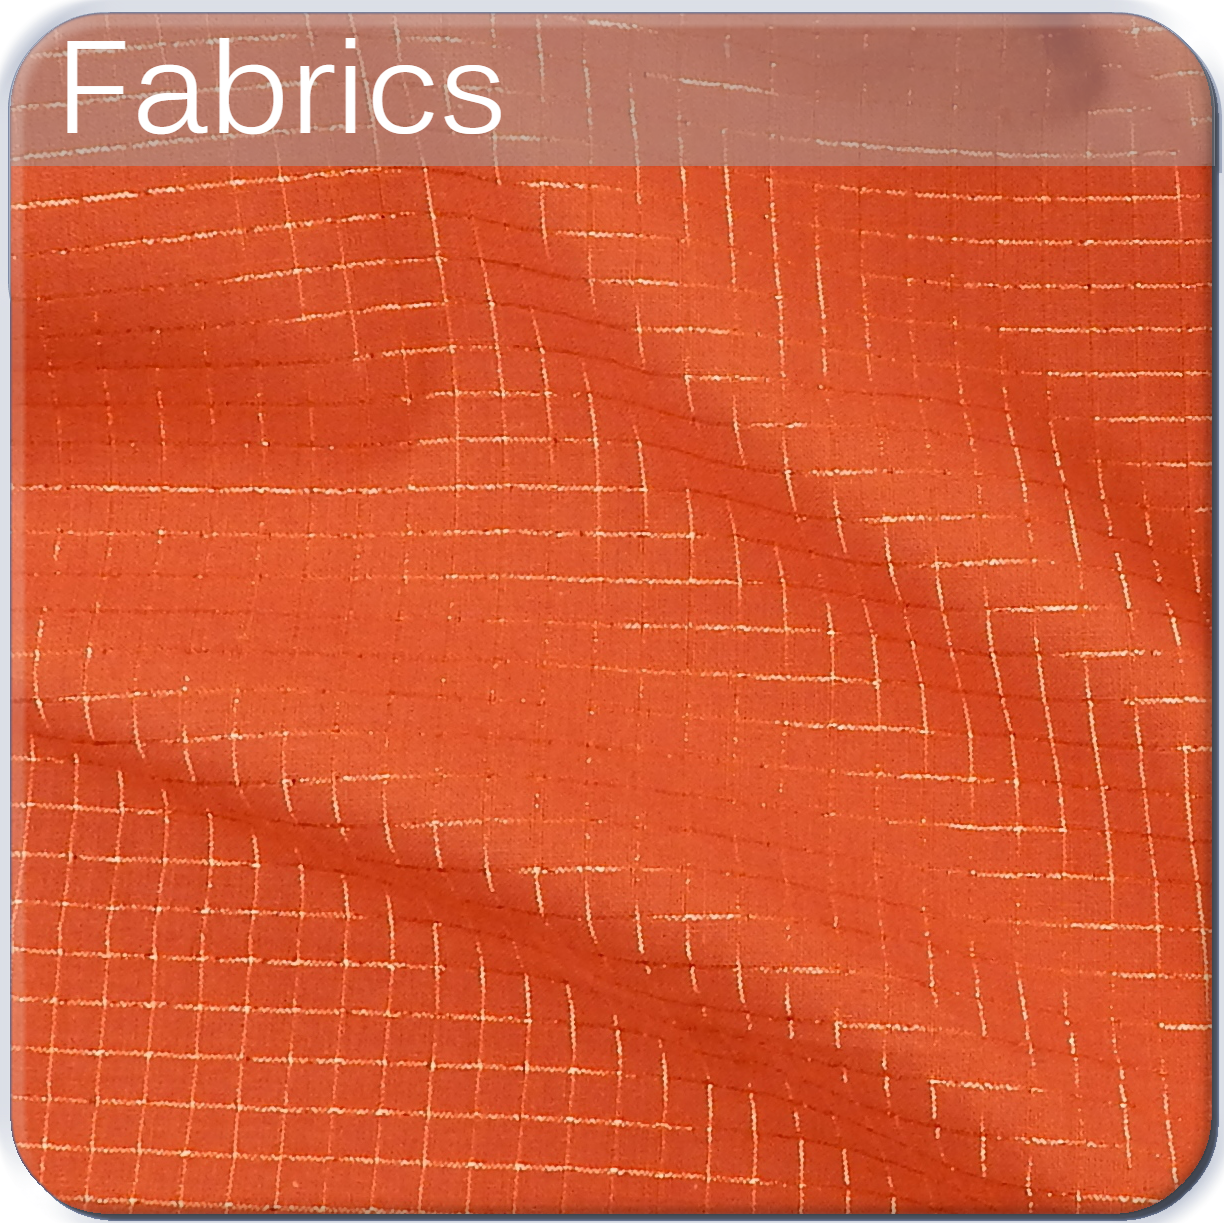 fabric-5.png